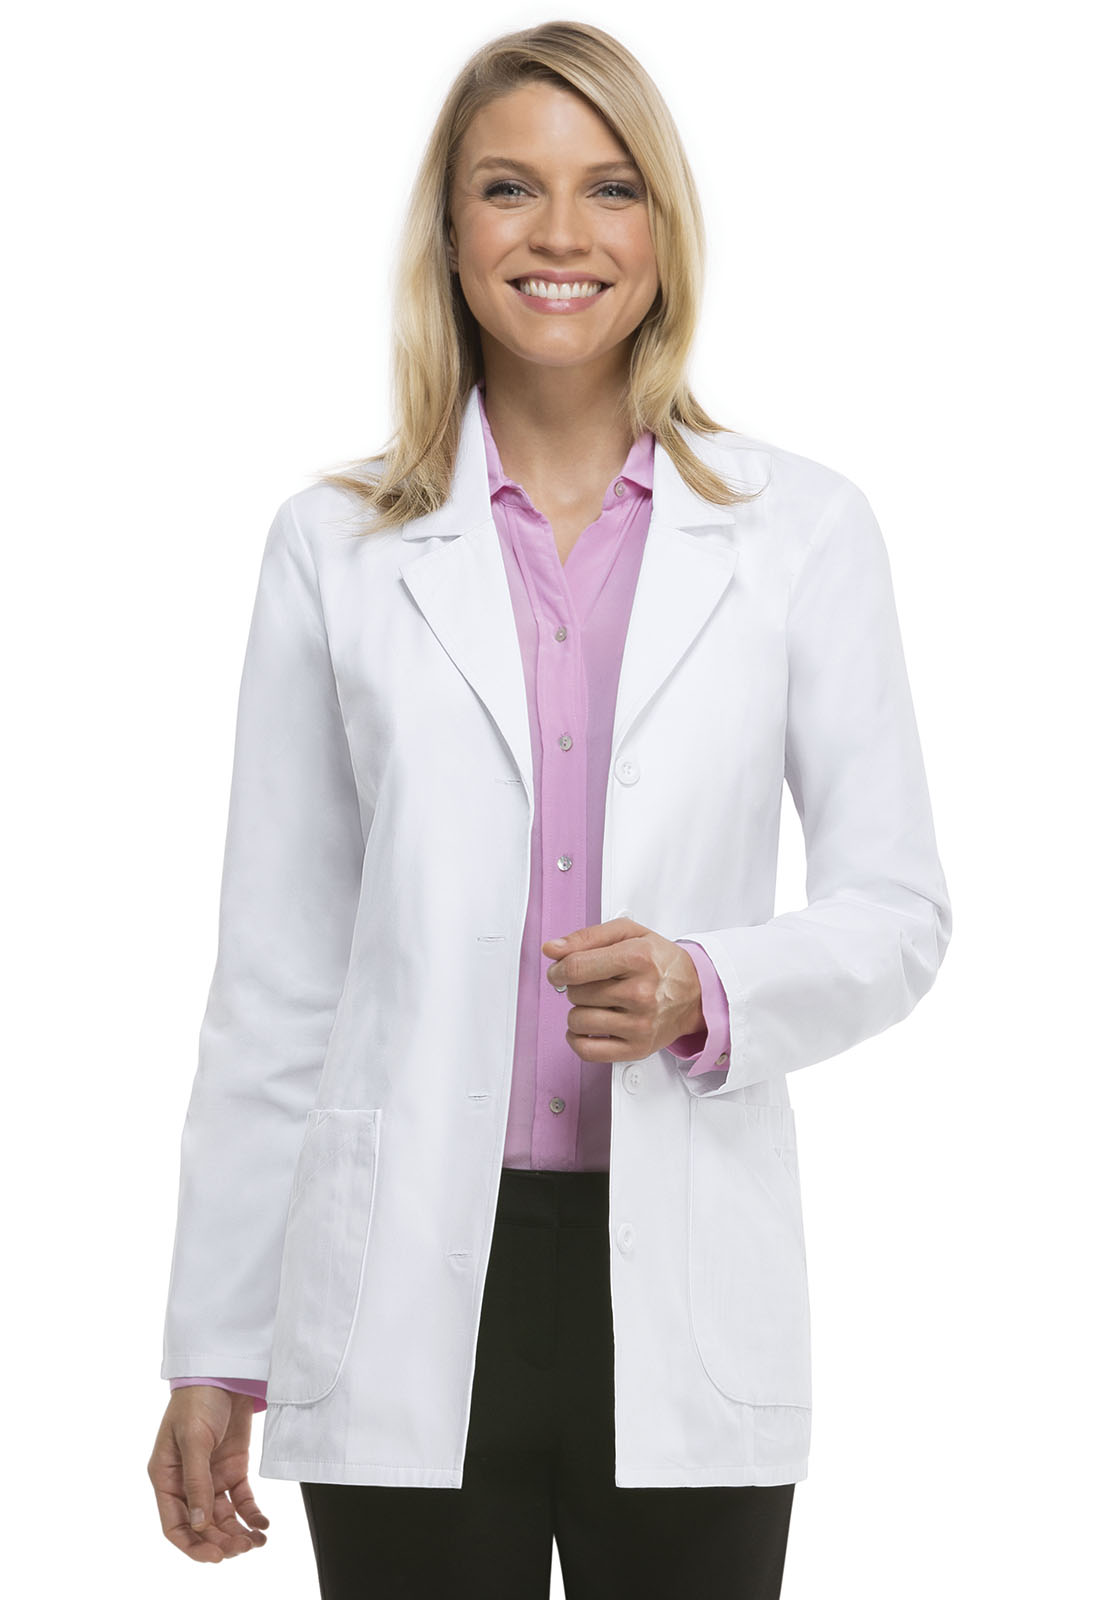 d6132516c79 Dickies Lab Coats from Dickies Medical